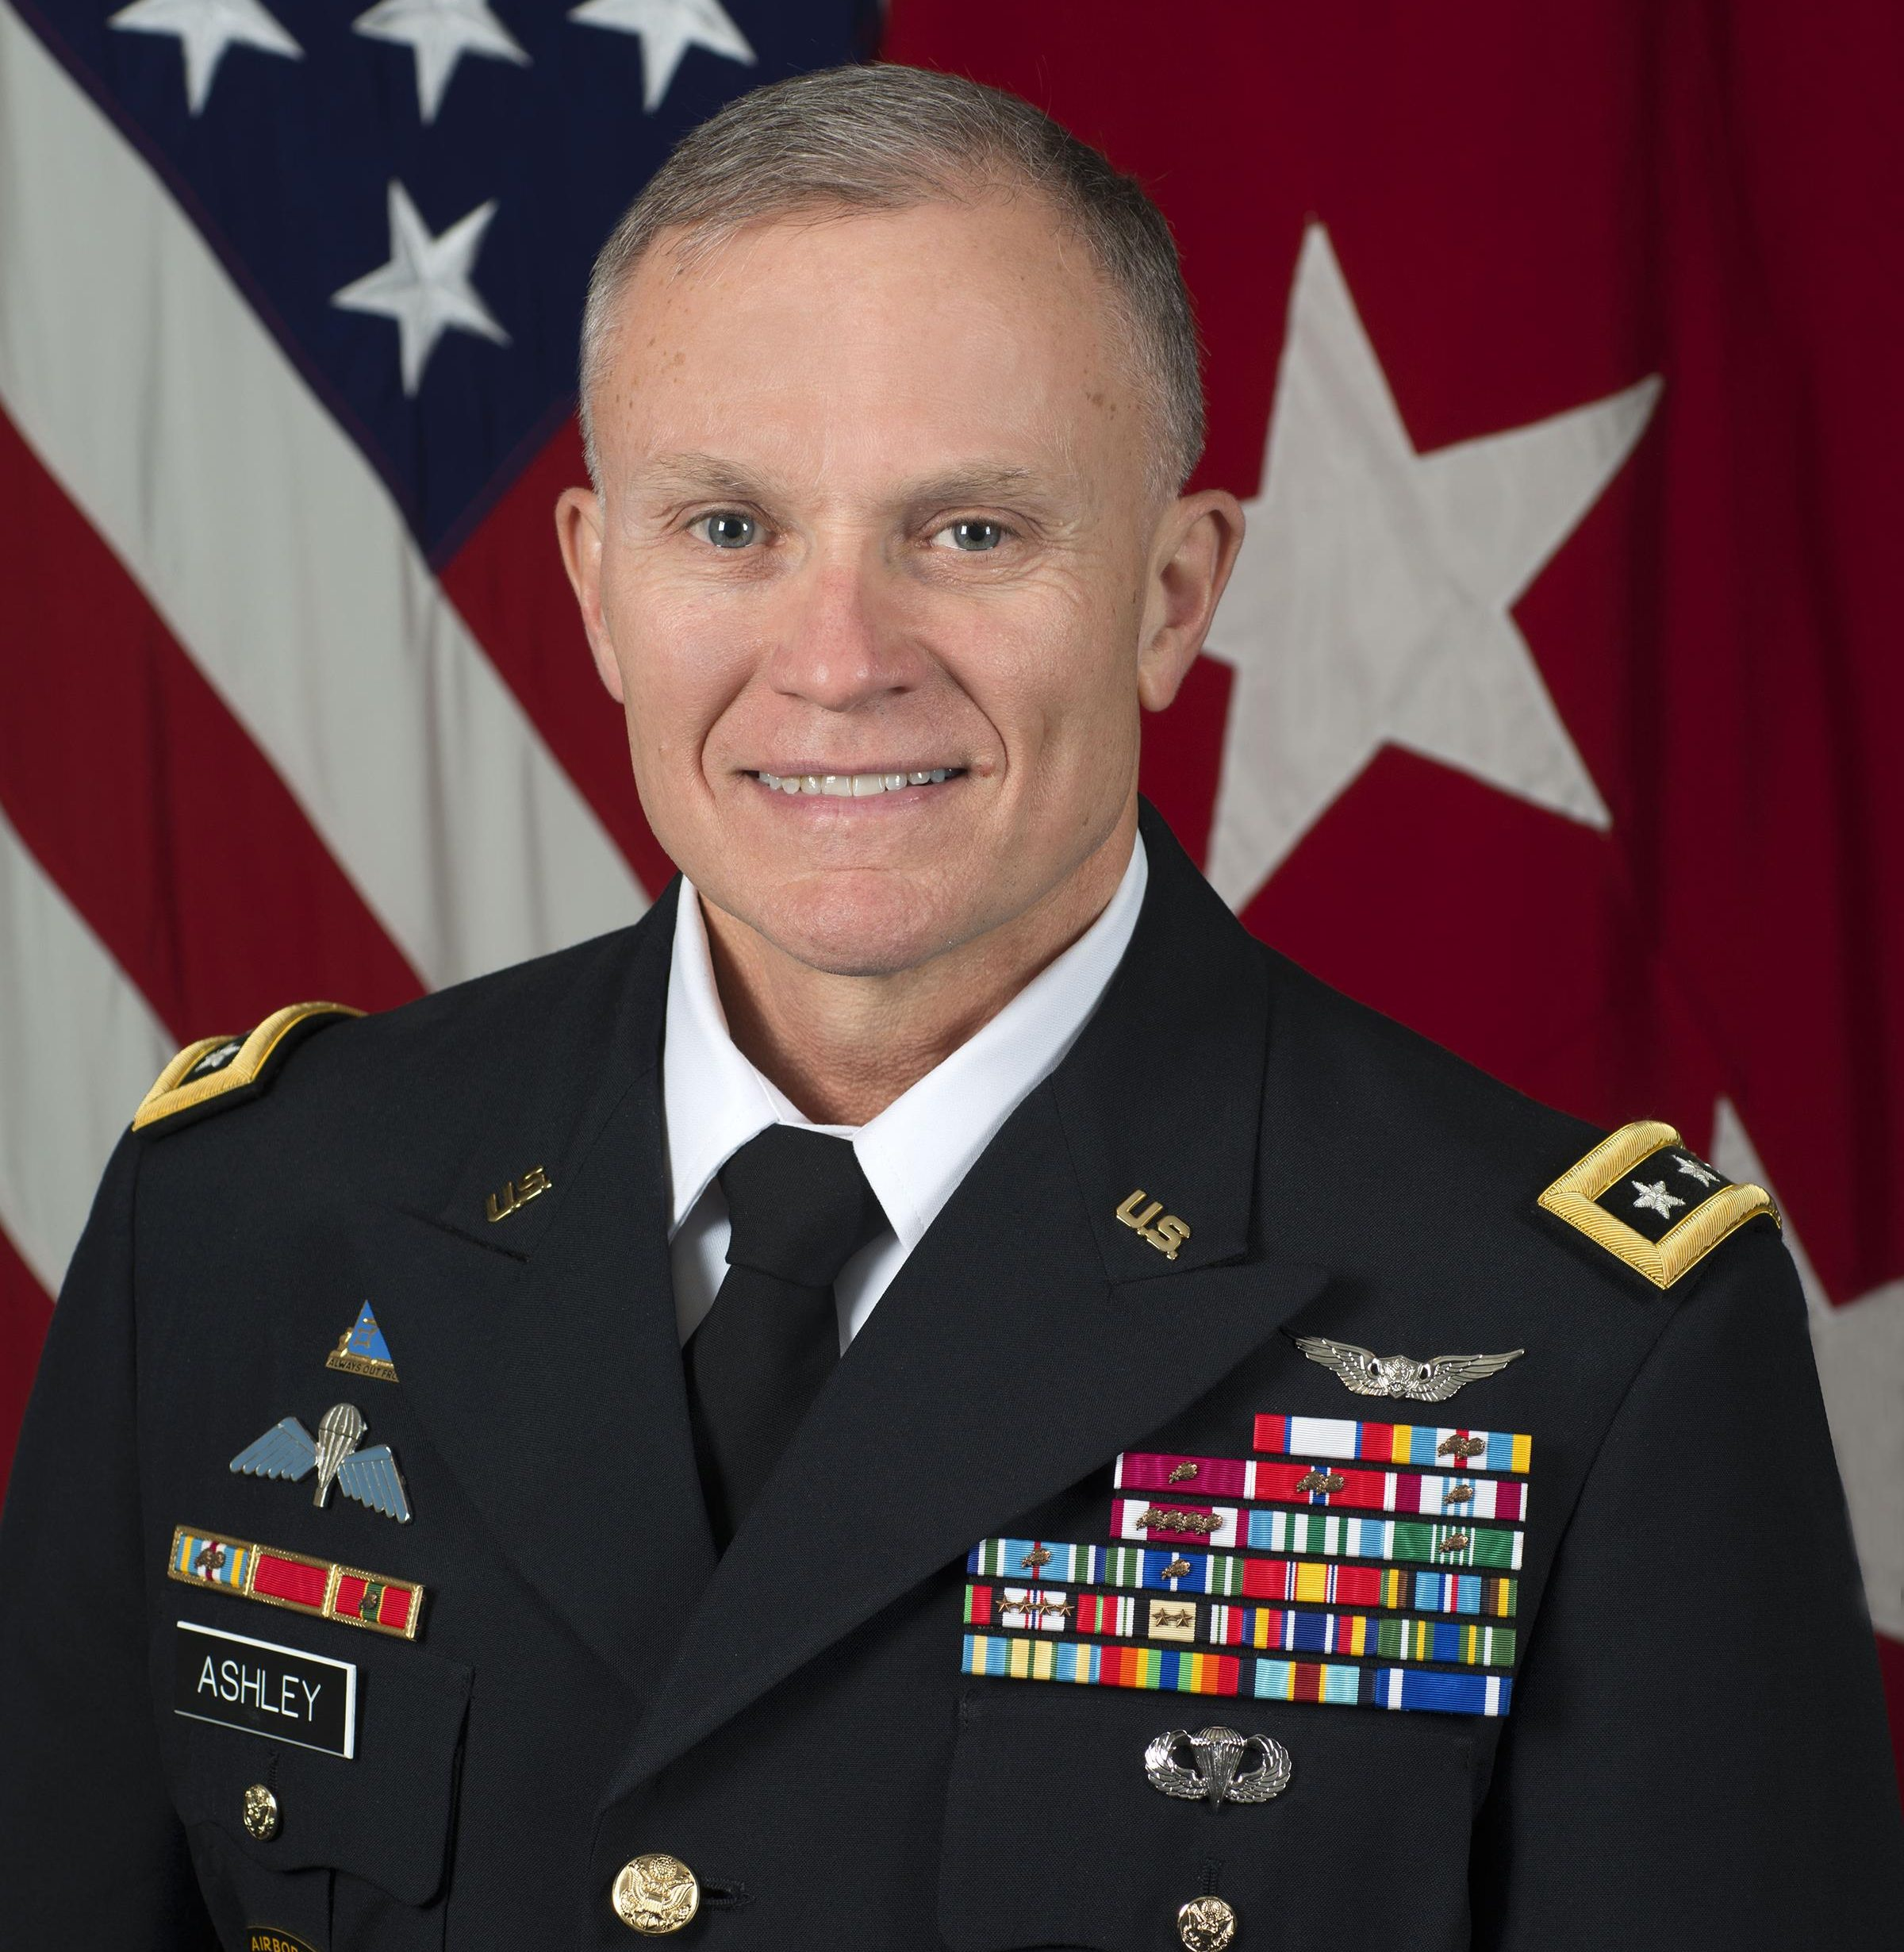 LTG Robert P. Ashley, Jr.